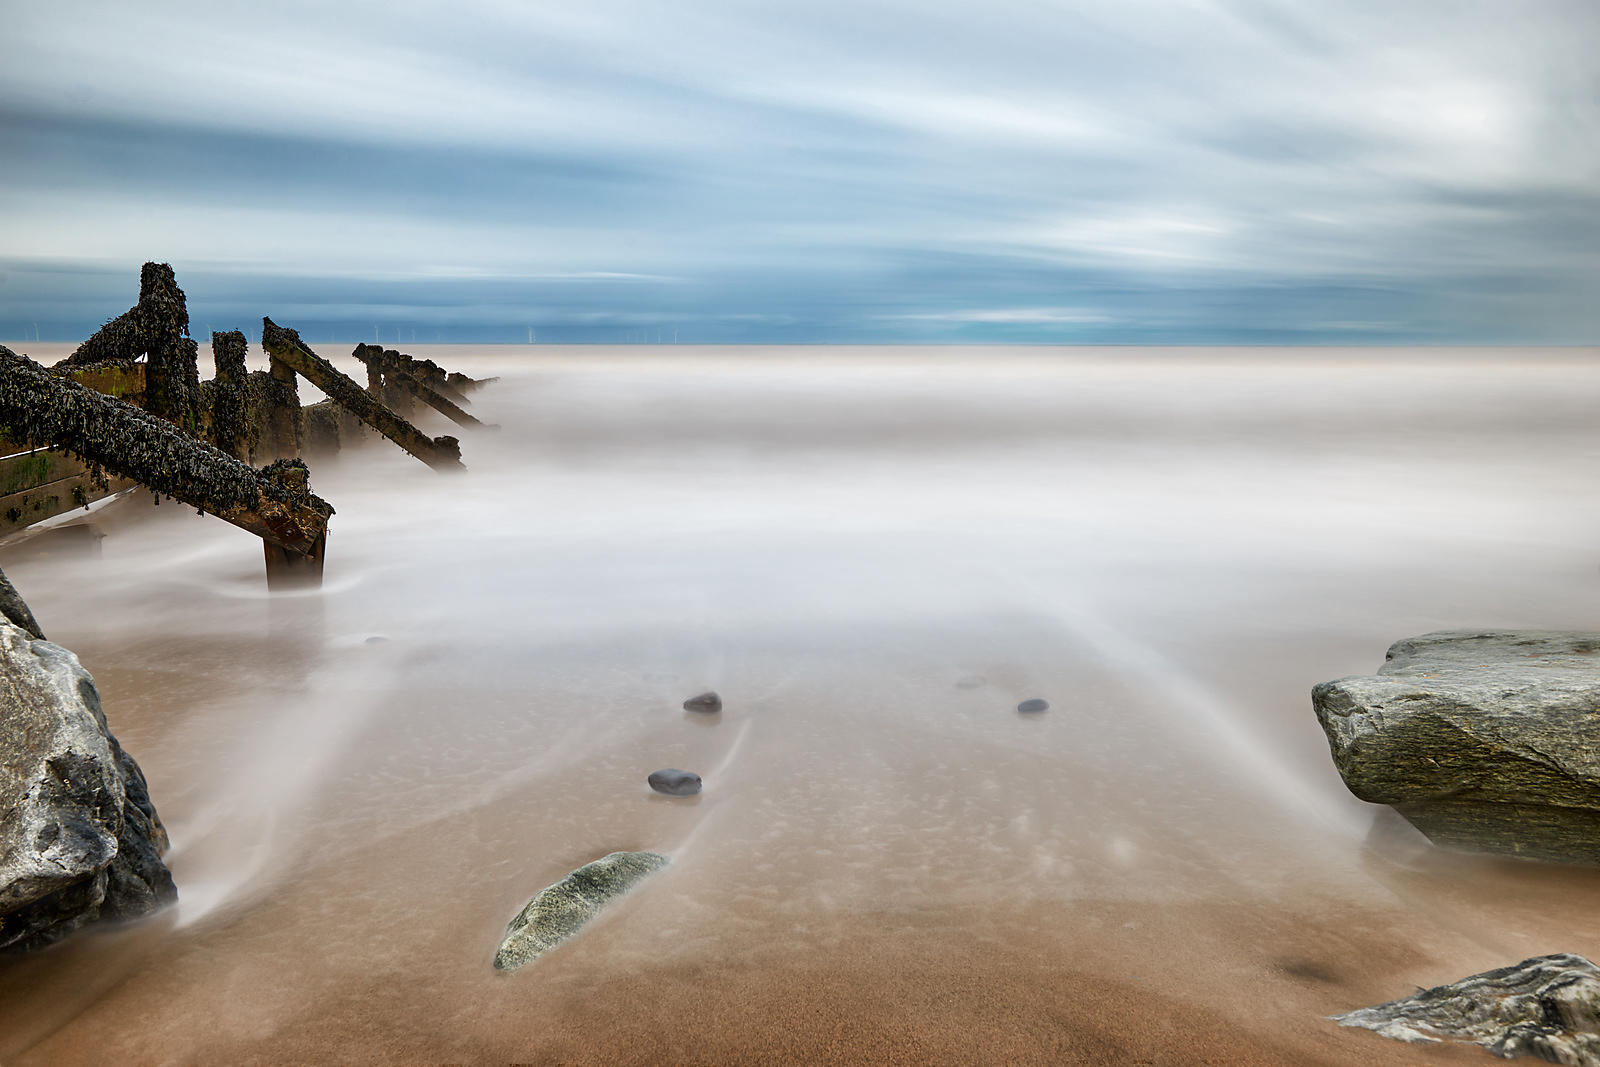 Landscape-canvas-wall-art-Sea-art-for-sale-Withernsea_-_DSC7772_-_17-03-18_1